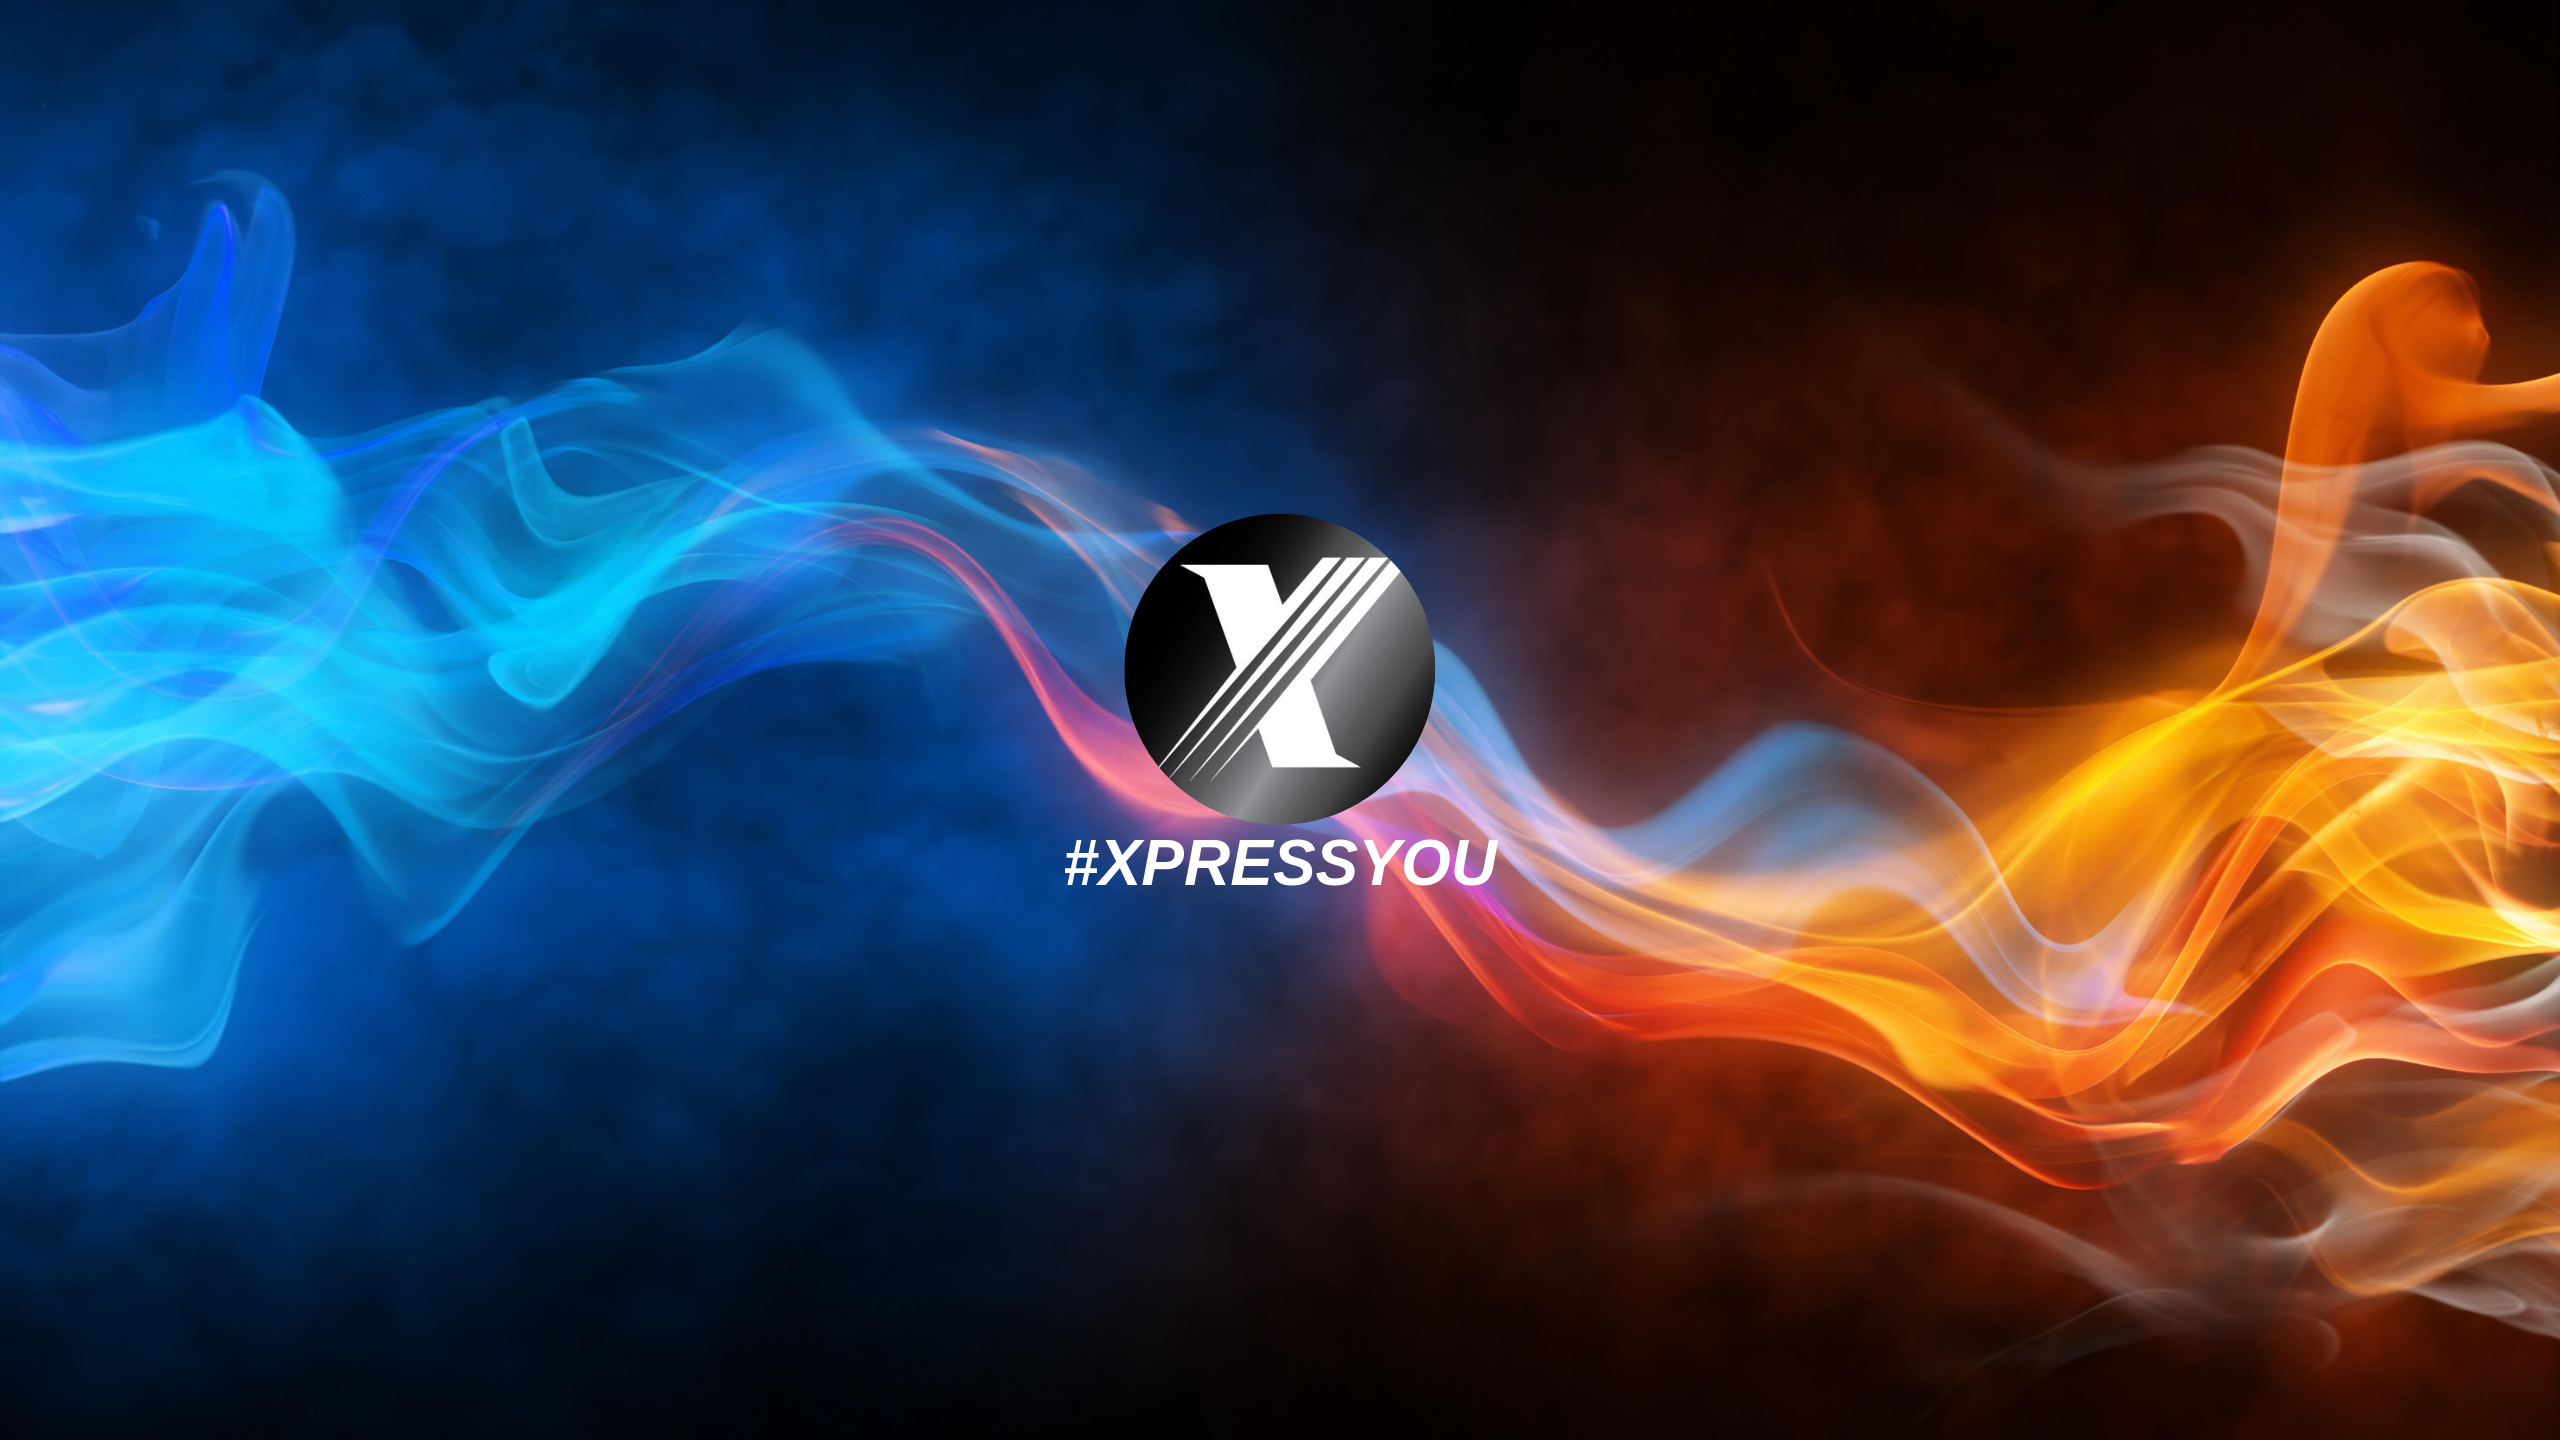 Xpress You